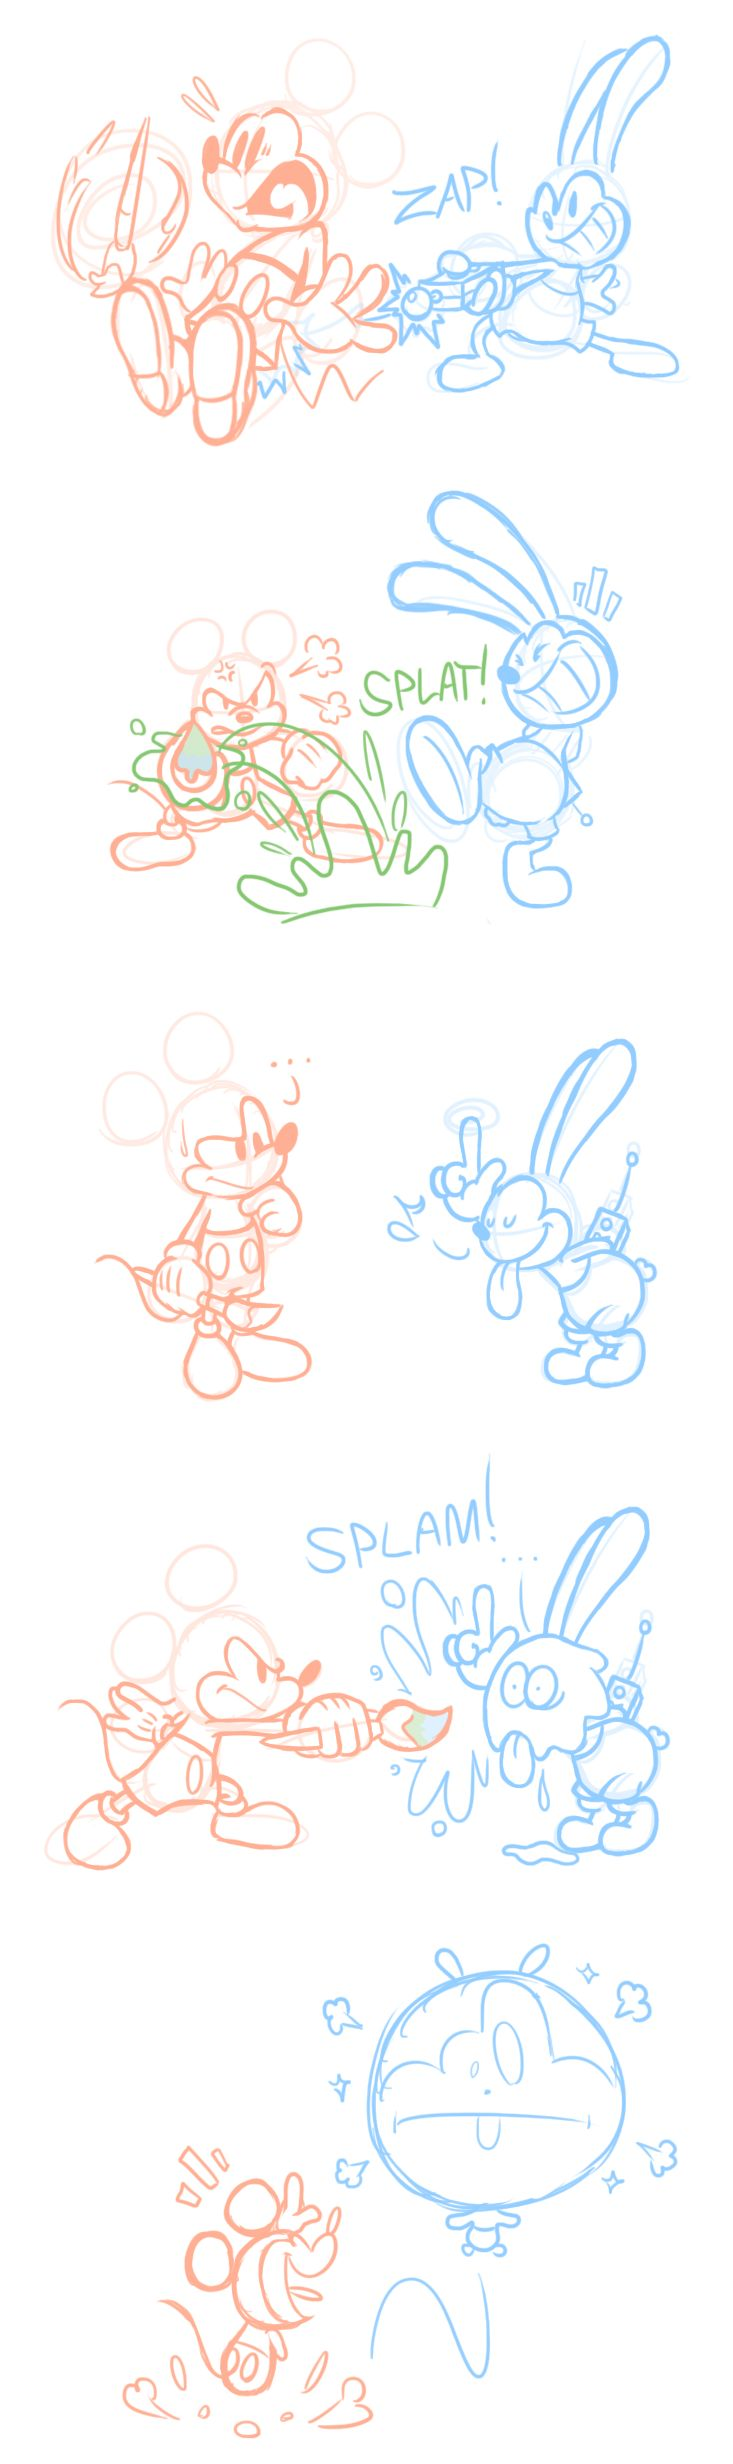 Epic Mickey 2 Comic - Battle of the Bros. by JamesmanTheRegenold.deviantart.com on @deviantART